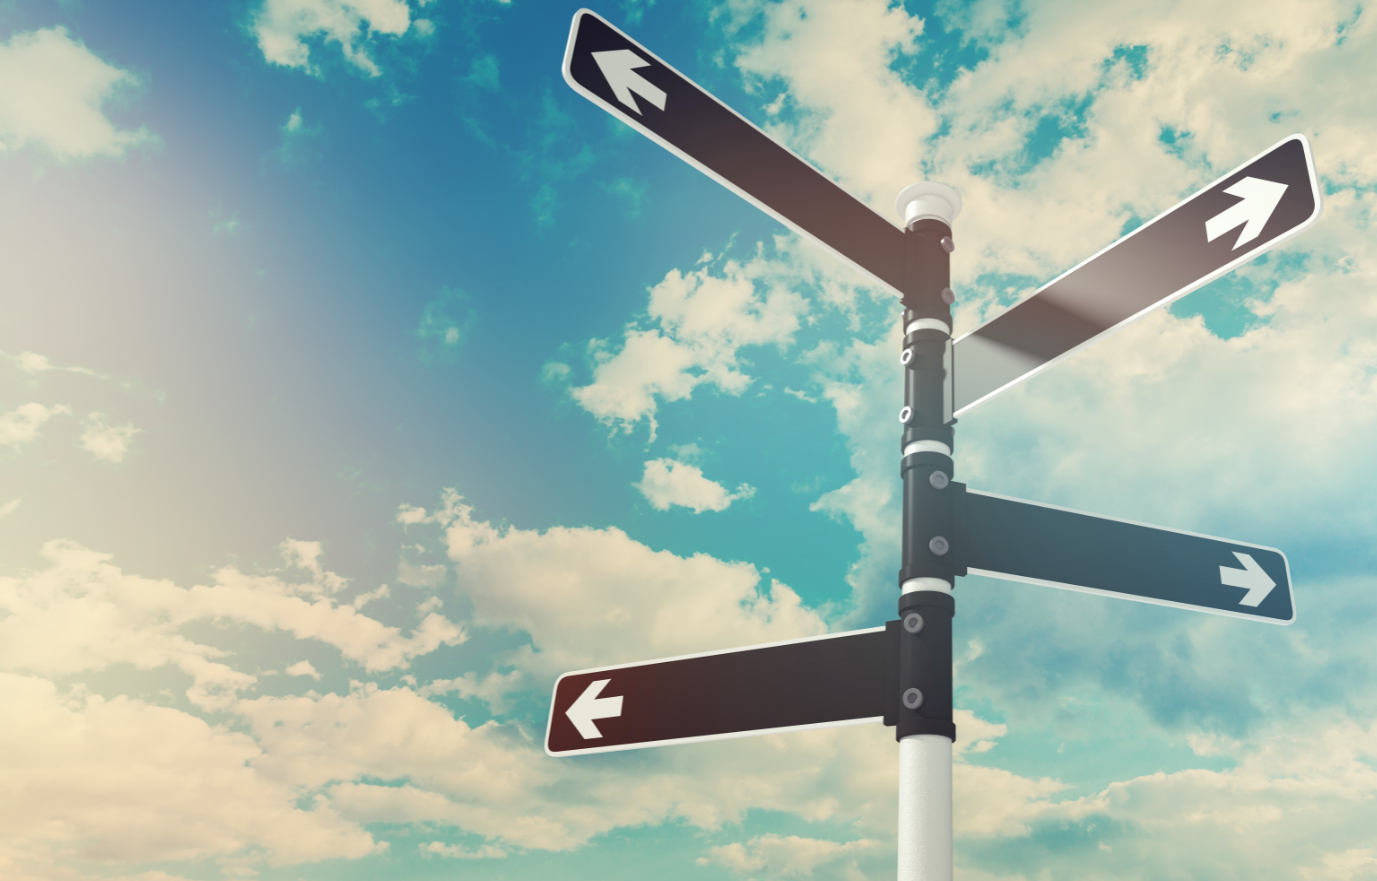 Exploring the New Normal with Strategic Foresight